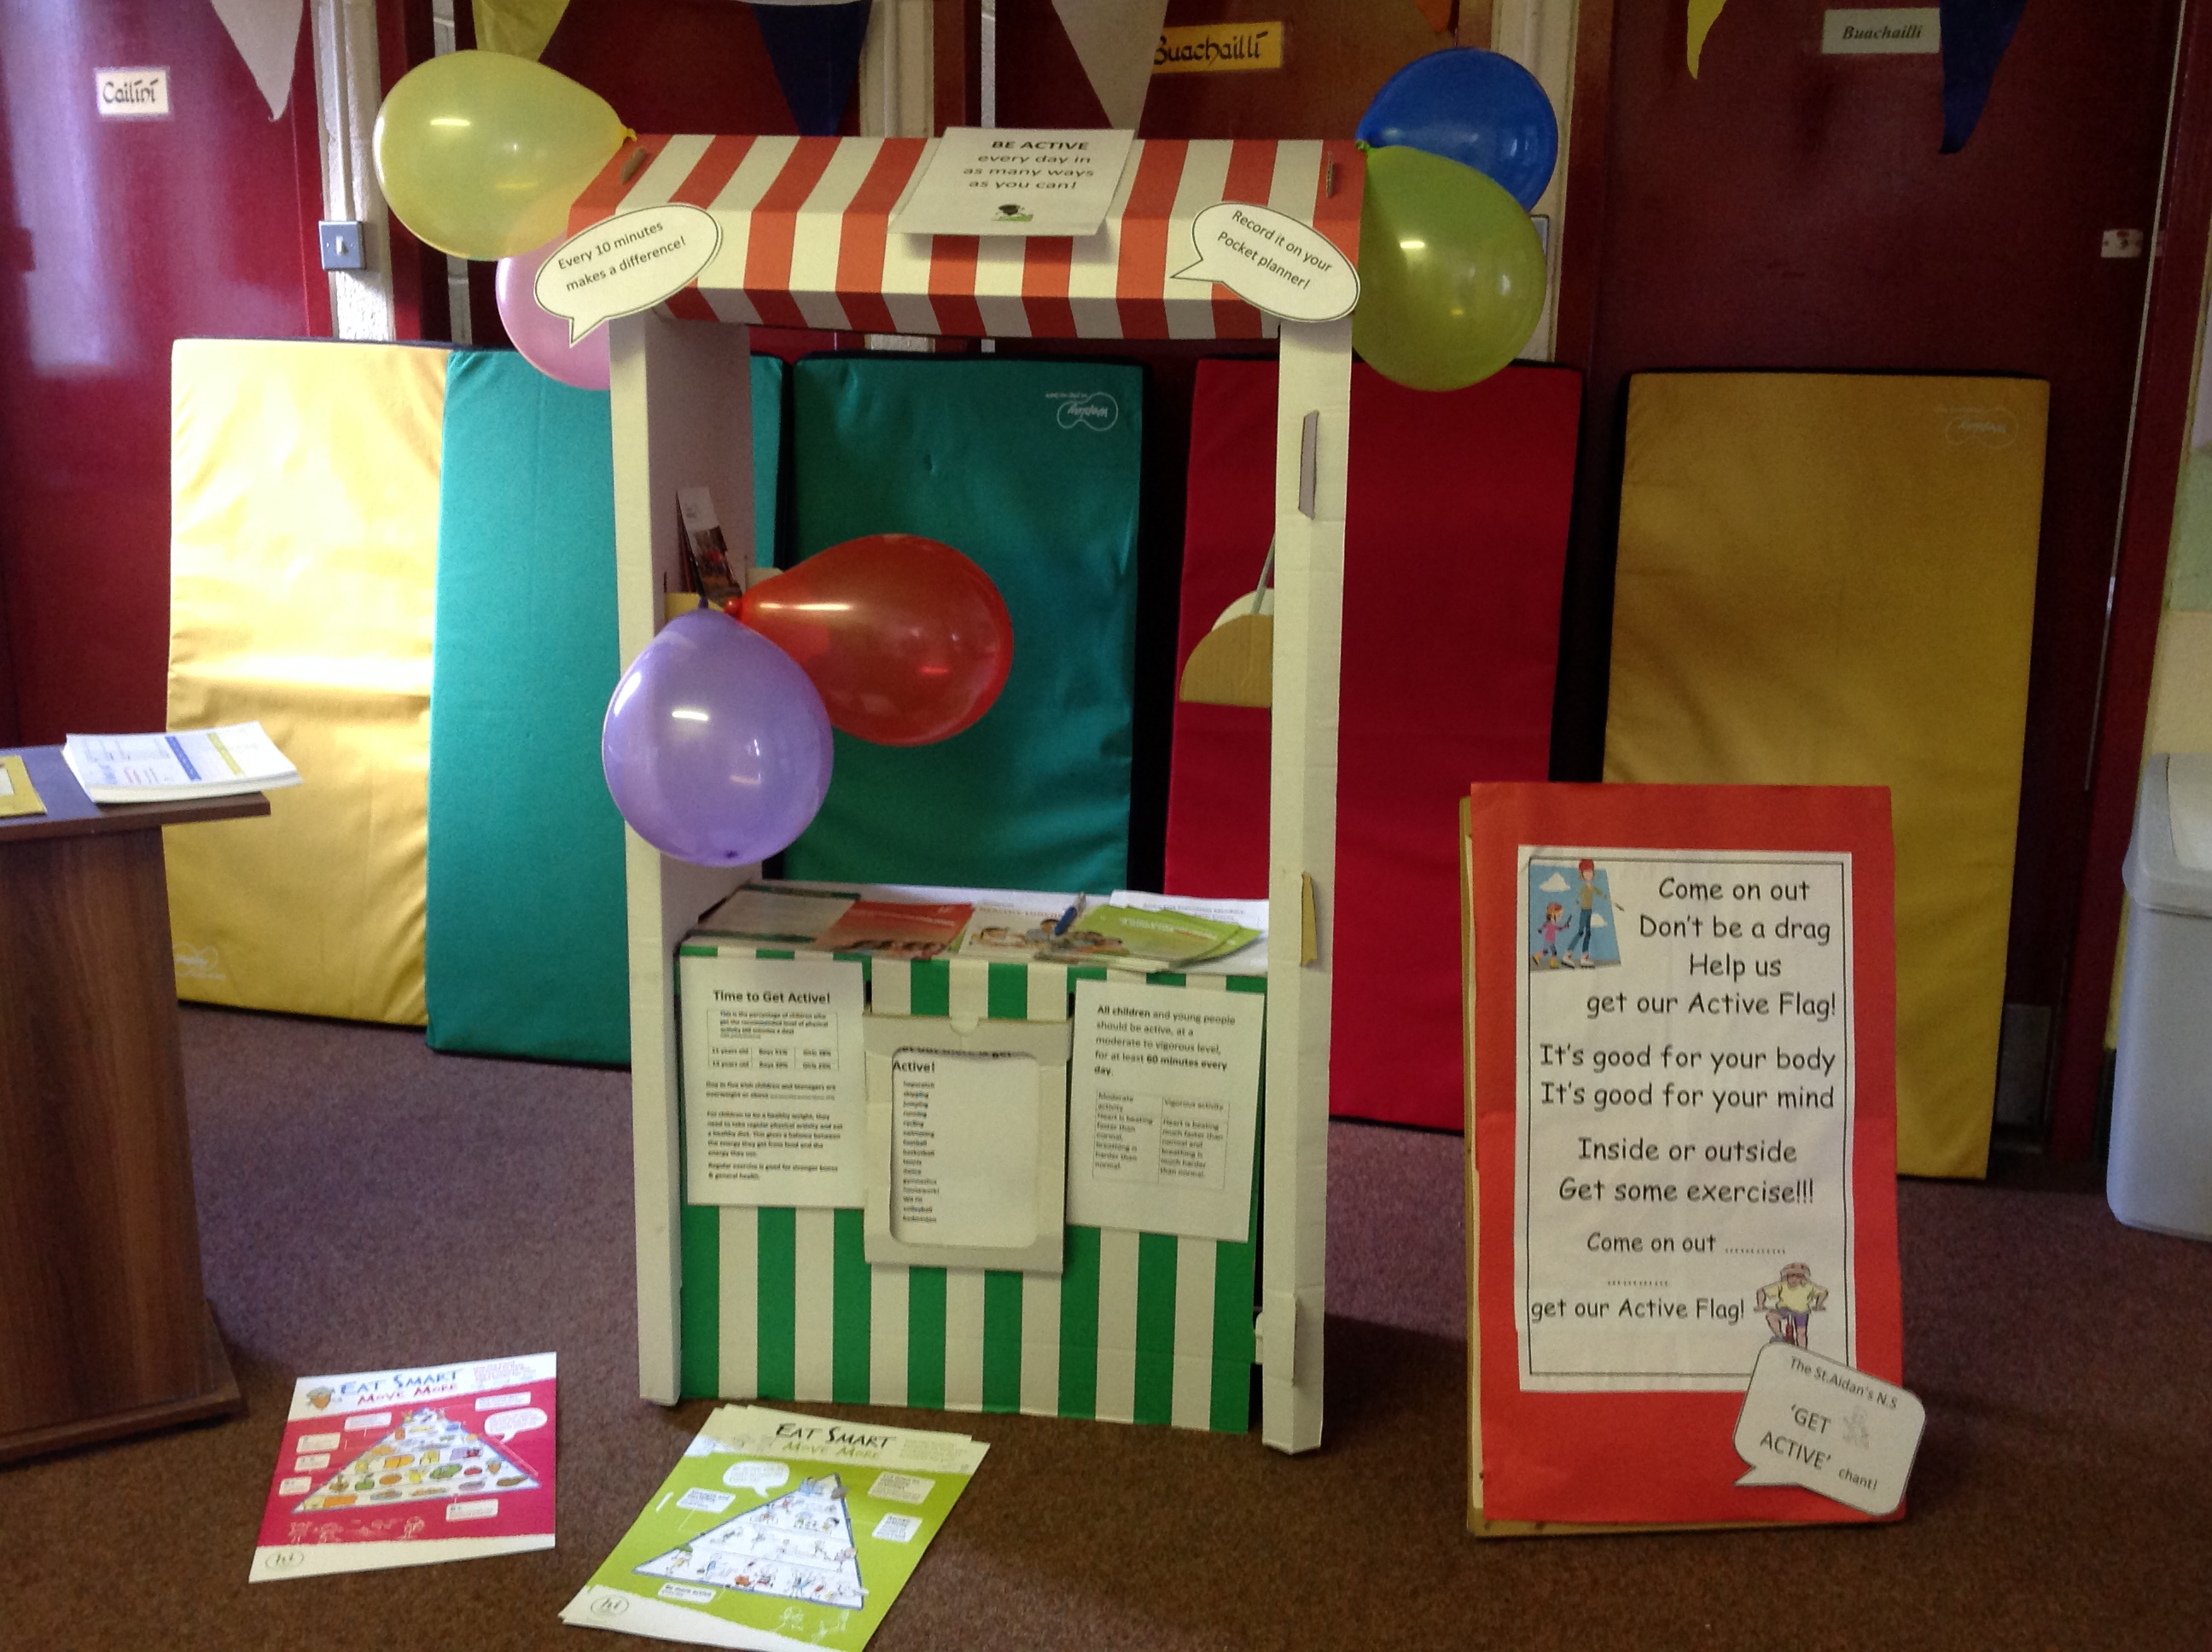 Our Information Station